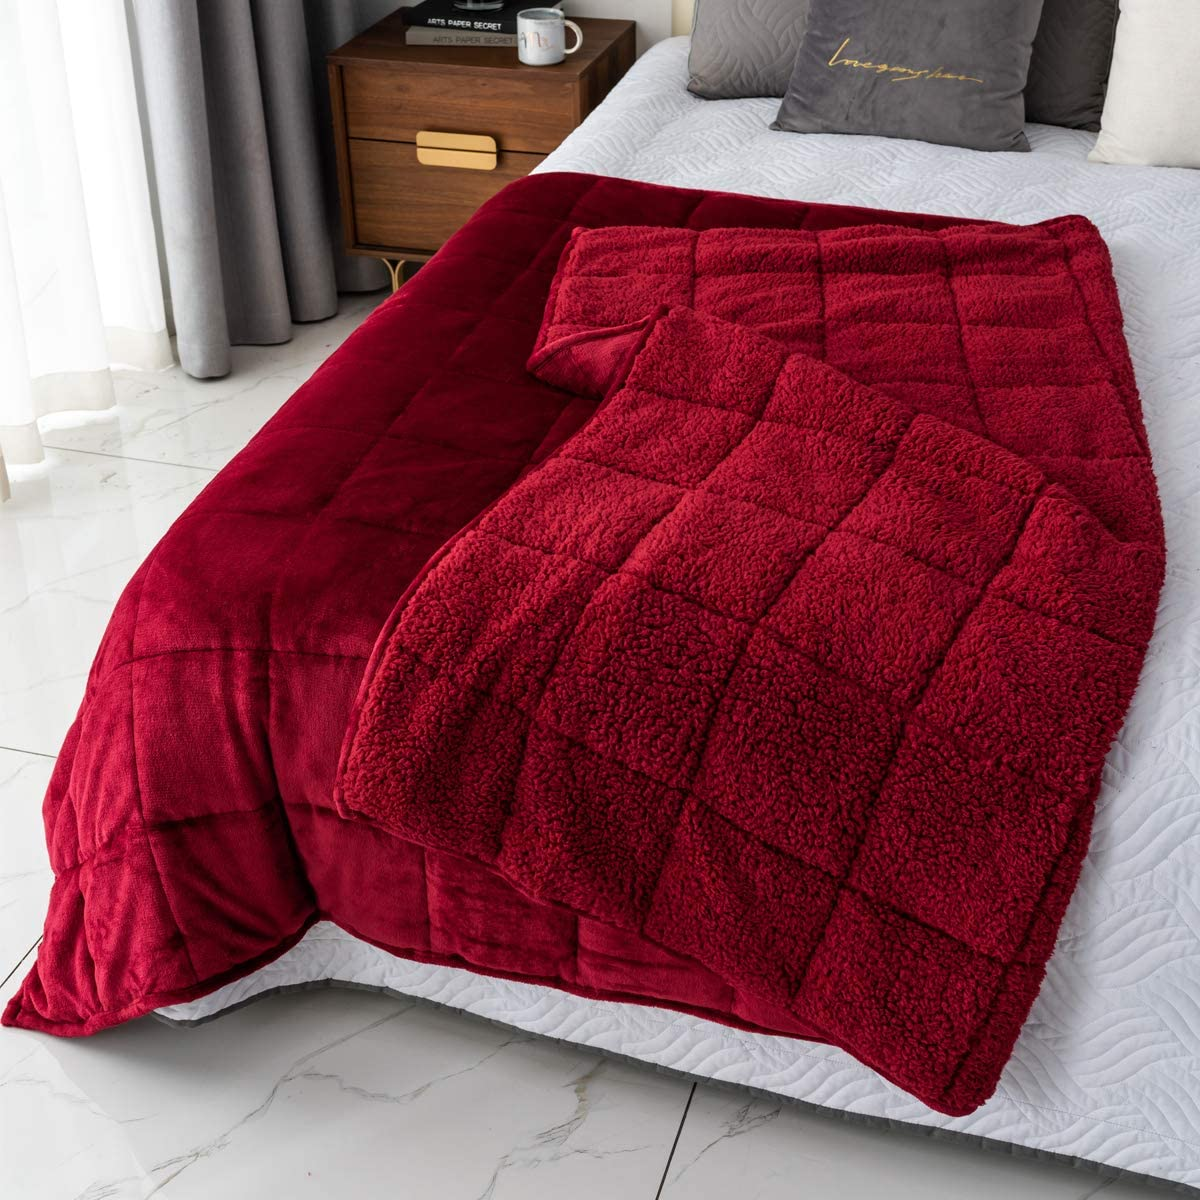 Mr. Sandman sherpa fleece weighted blanket, gifts for wife